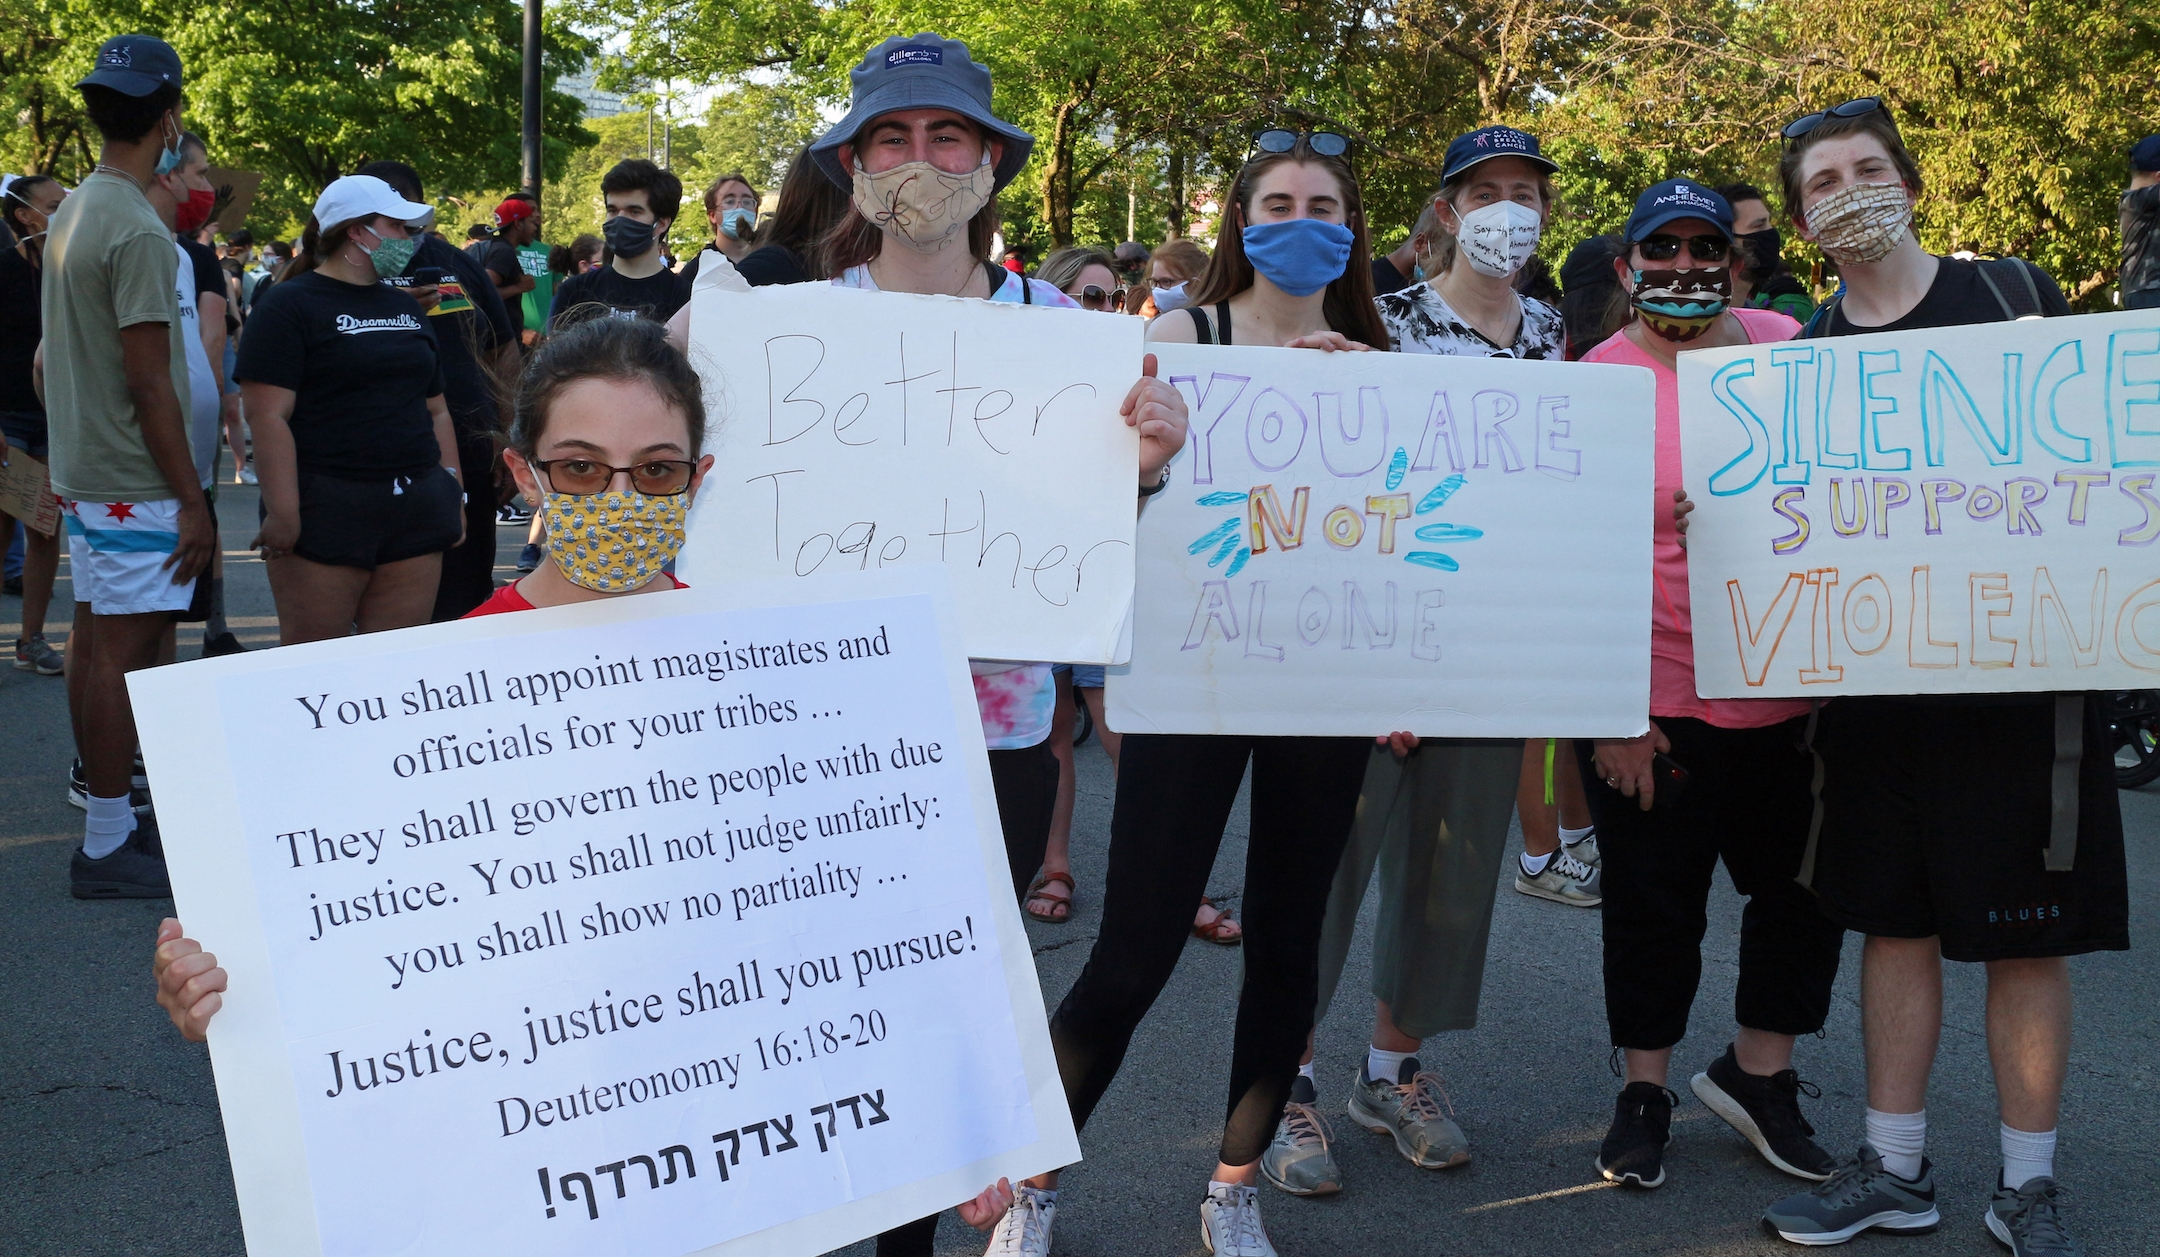 Demonstrators hold up signs at the protest. (Ariel Tesher)